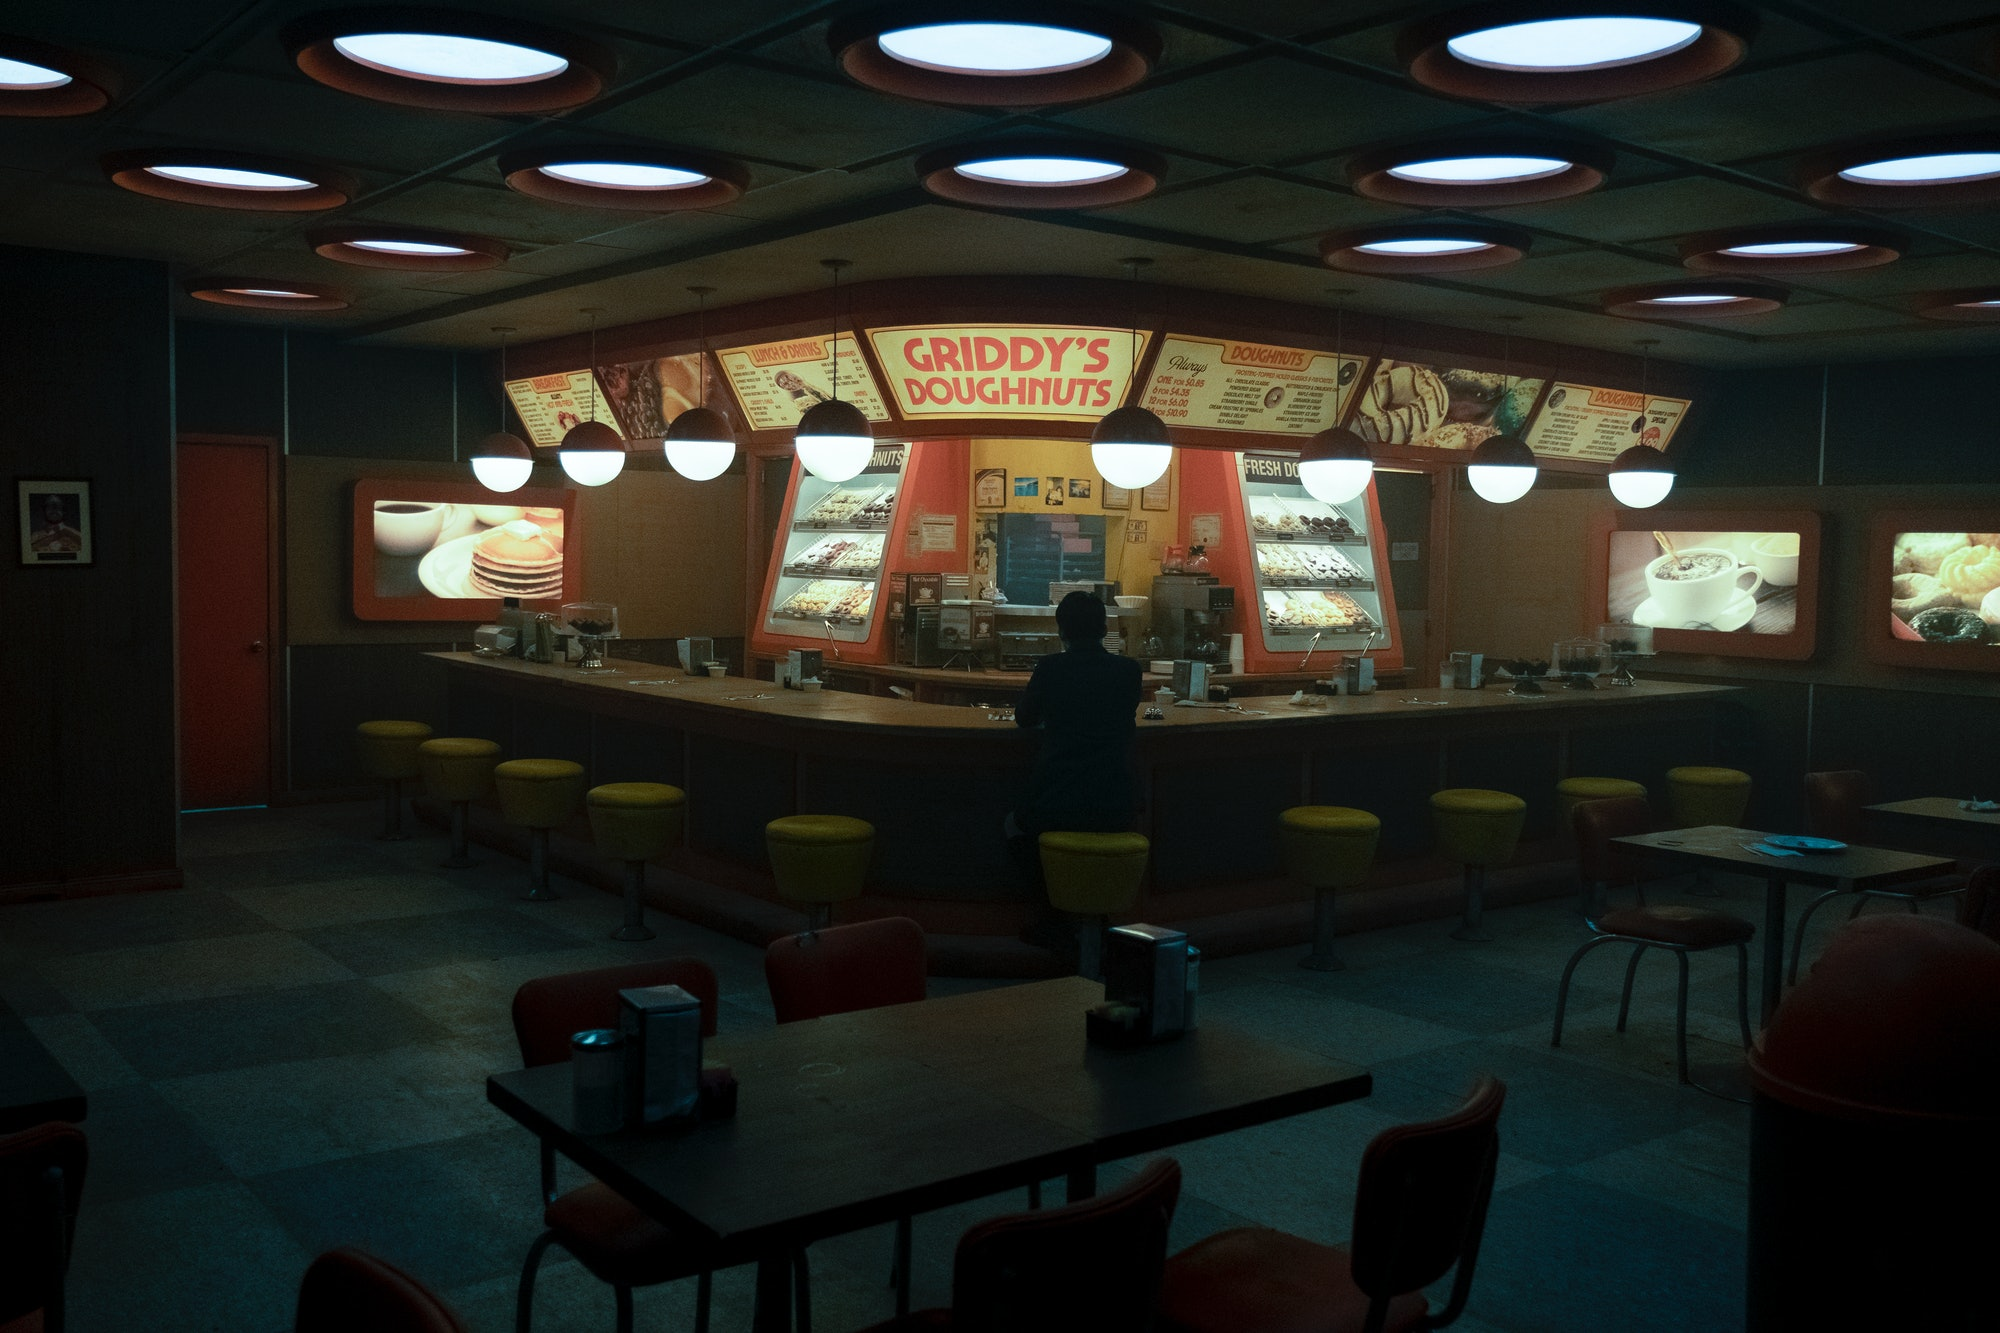 umbrella academy griddy's donuts